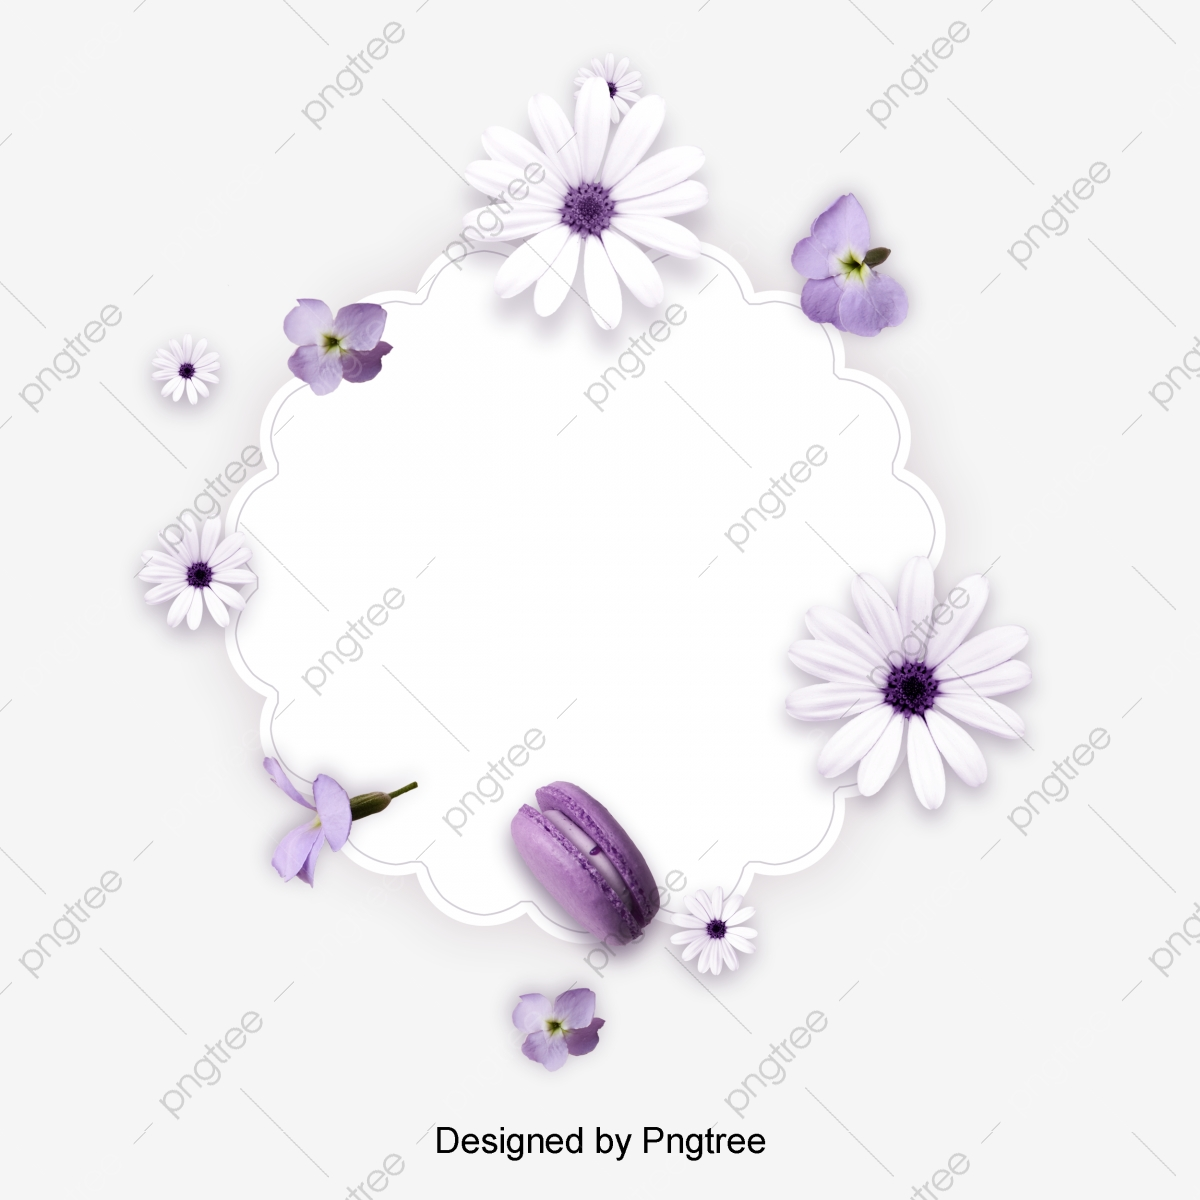 White Purple Flower Little Daisy Flower Card Butterfly Flower Illustration Valentines Day Flower Border Valentines Day Illustration Flower Png Transparent Clipart Image And Psd File For Free Download